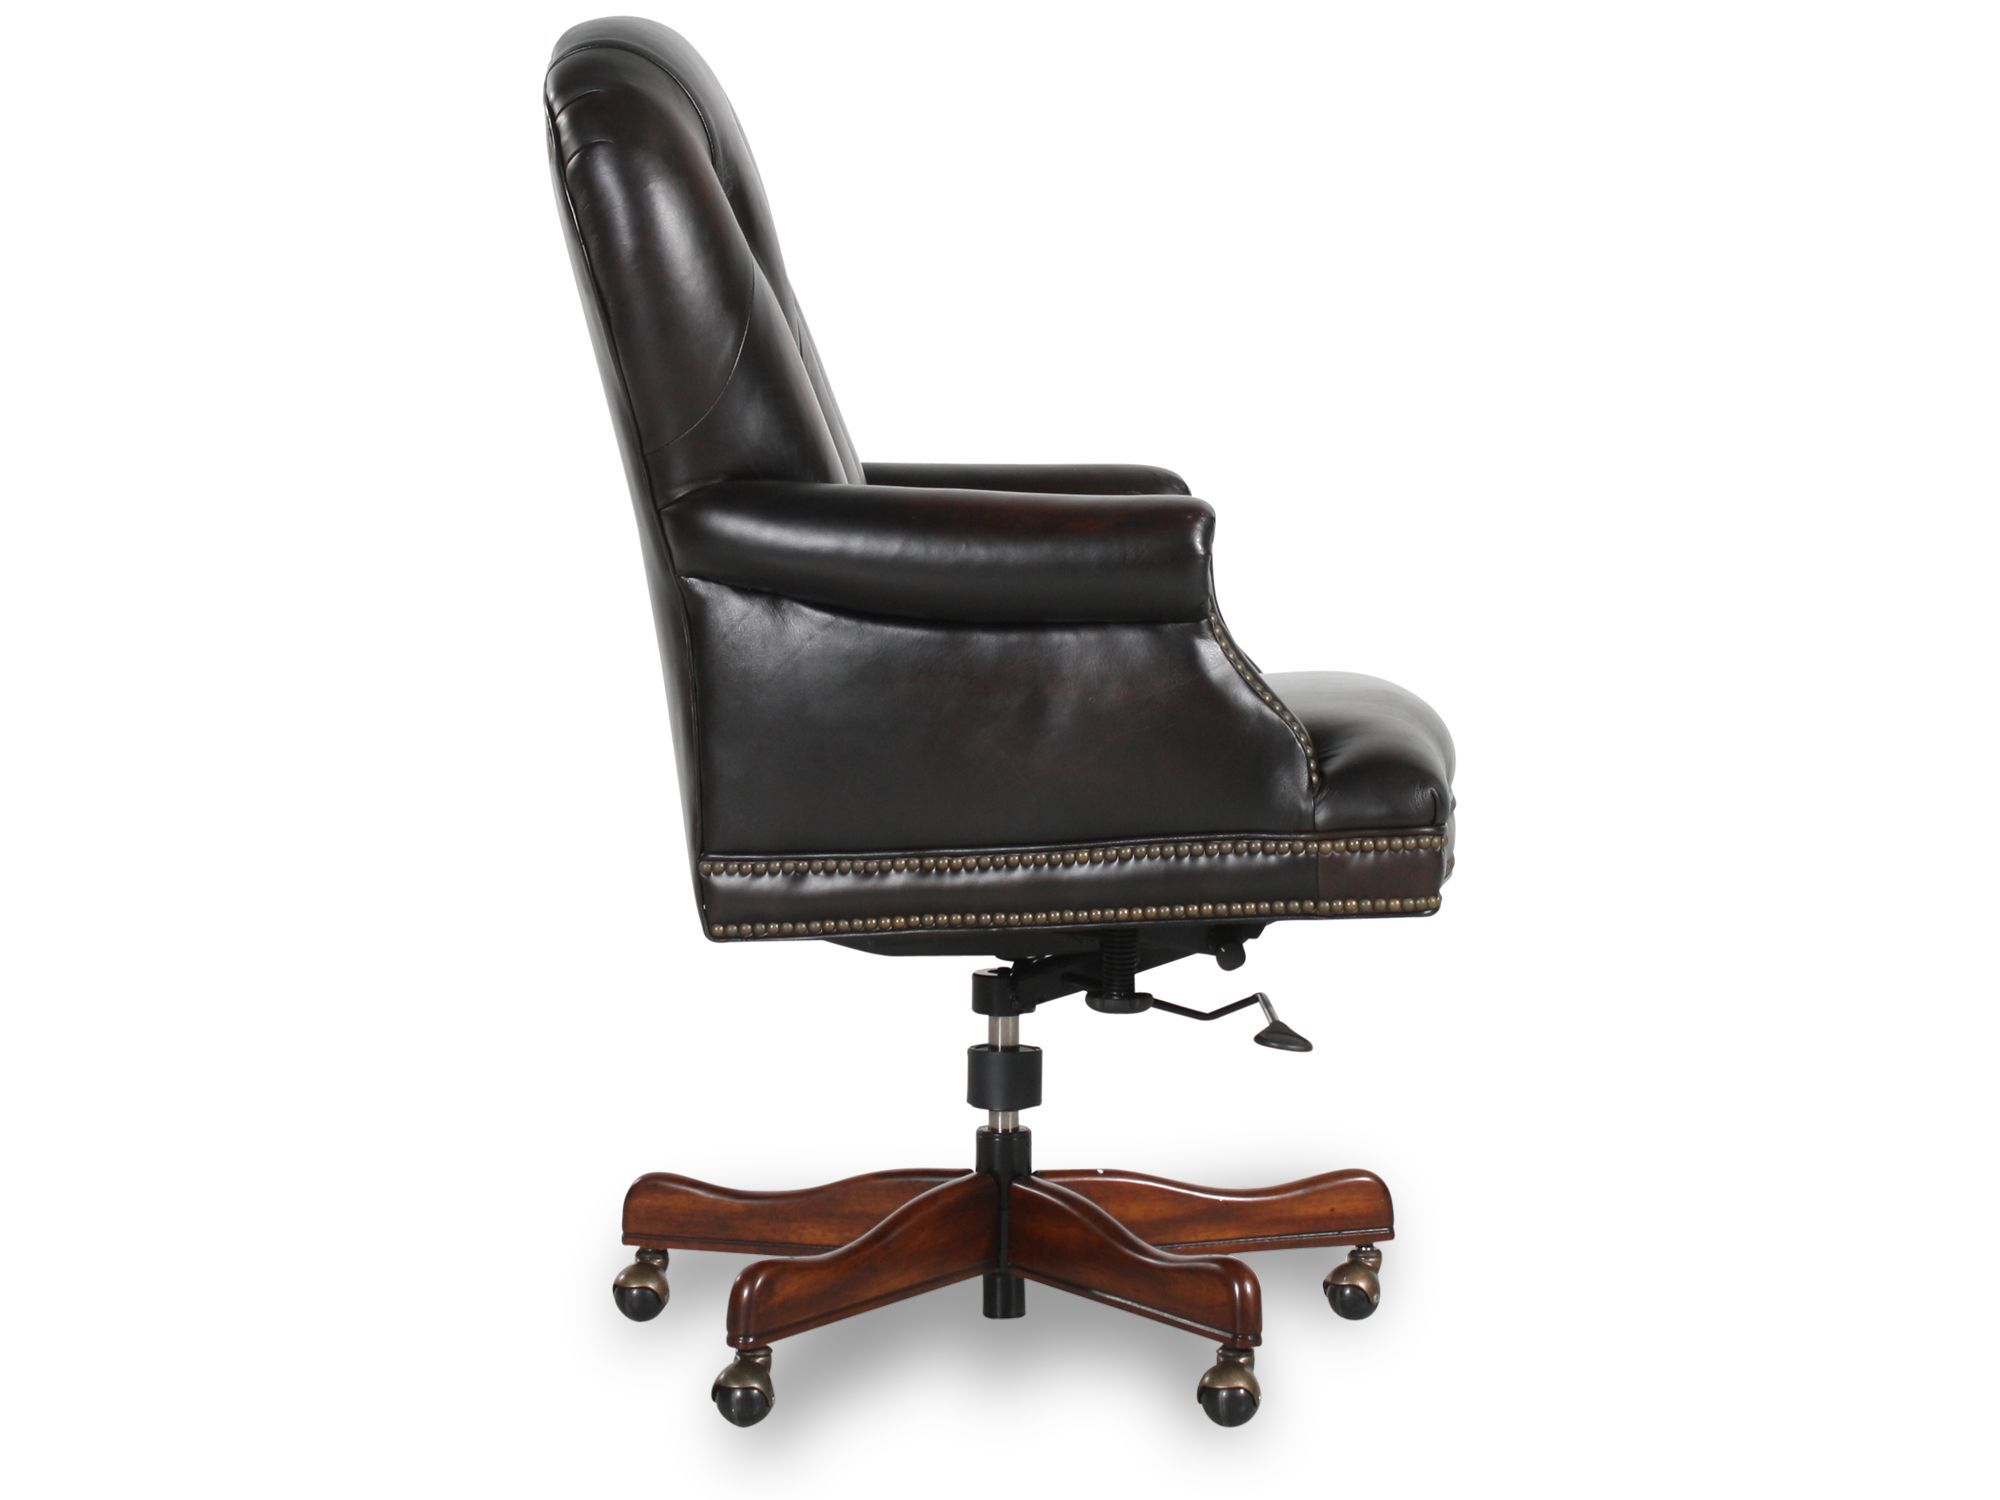 Tufted Leather Office Chair Leather Button Tufted Executive Swivel Tilt Chair In Dark Brown